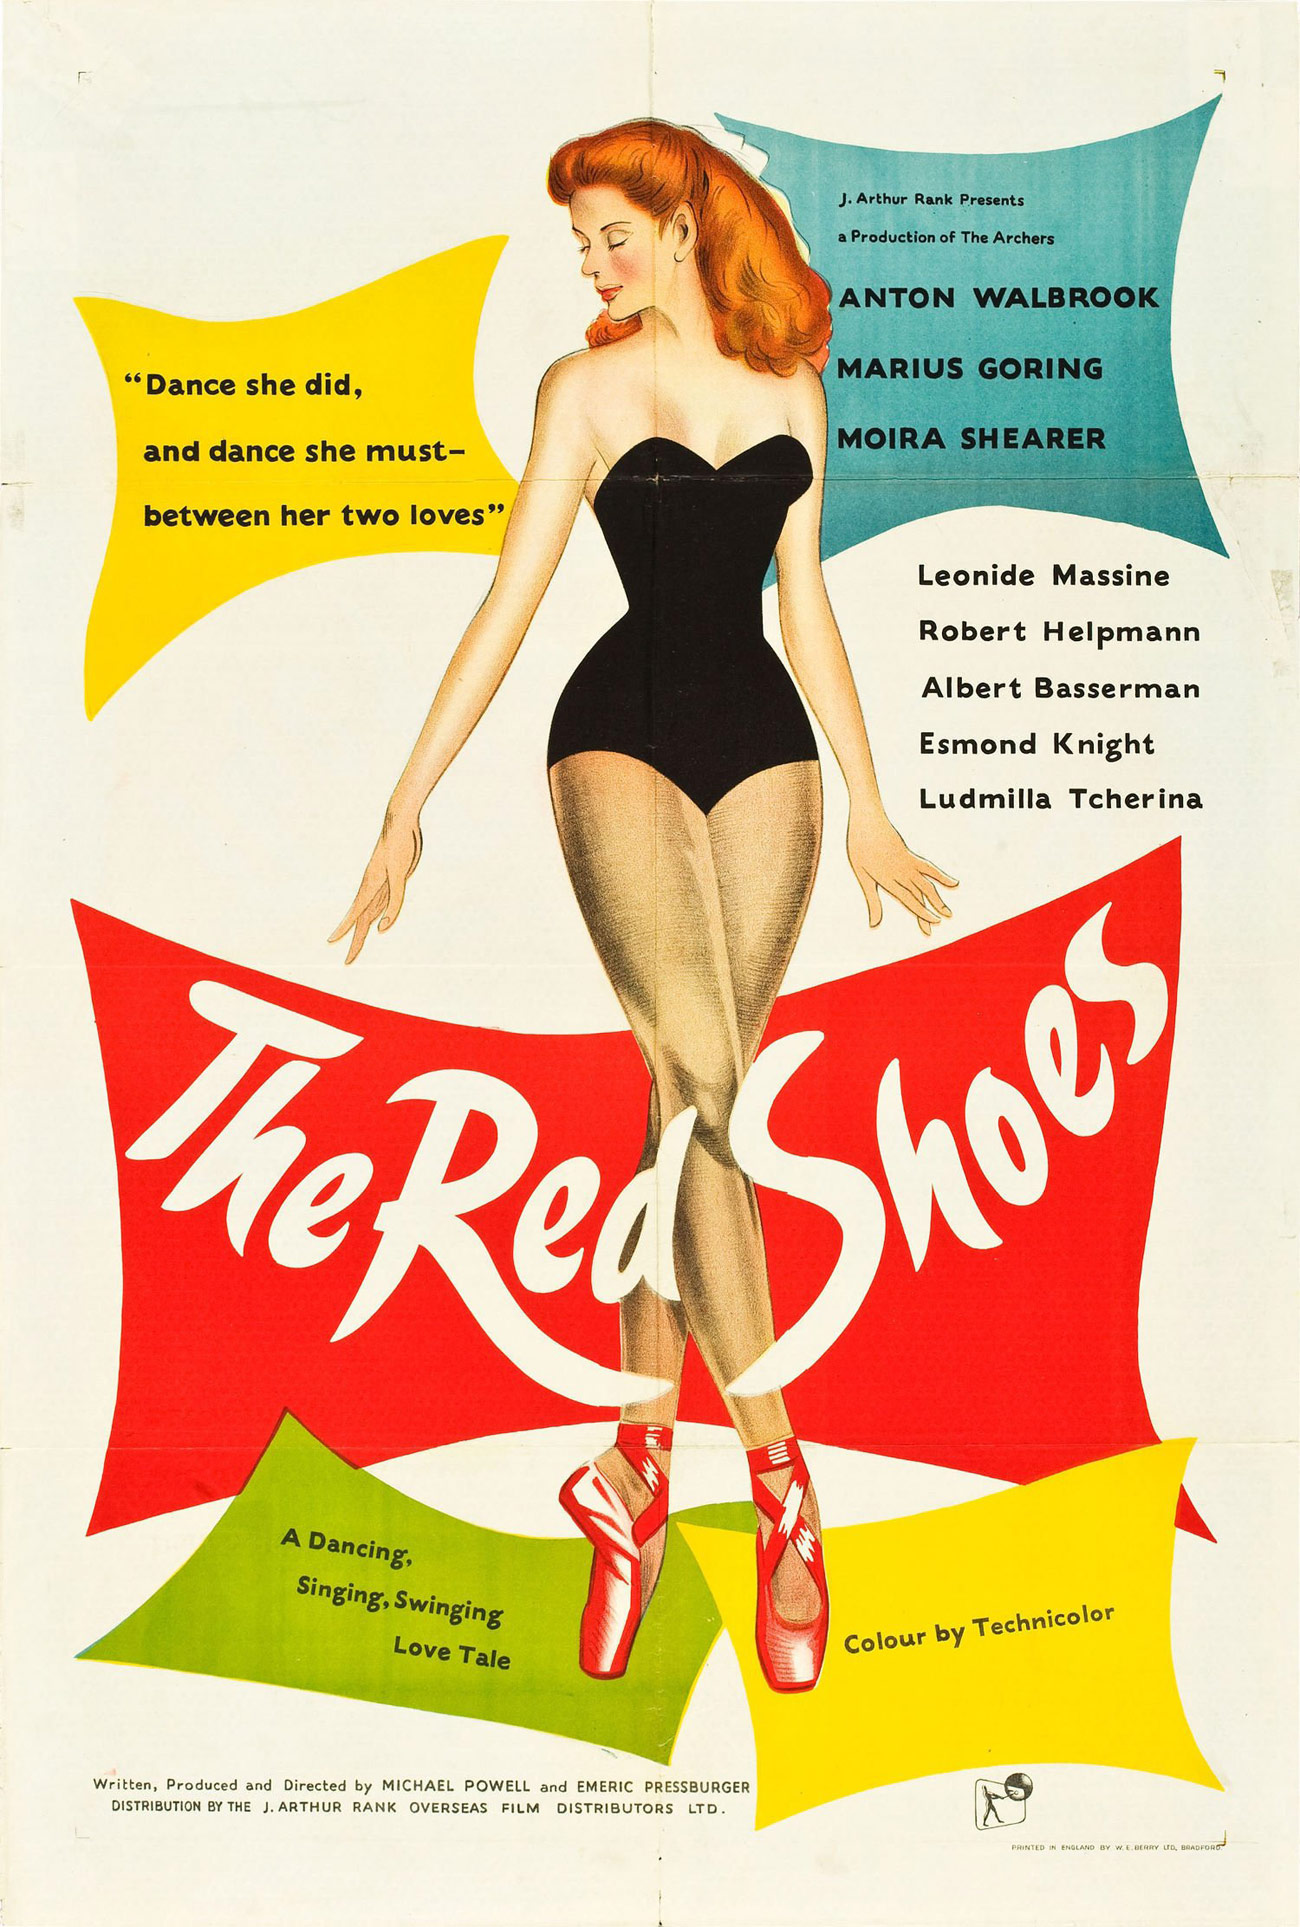 Promo poster for The Red Shoes, showing a woman in a strapless leotard and ballet shoes